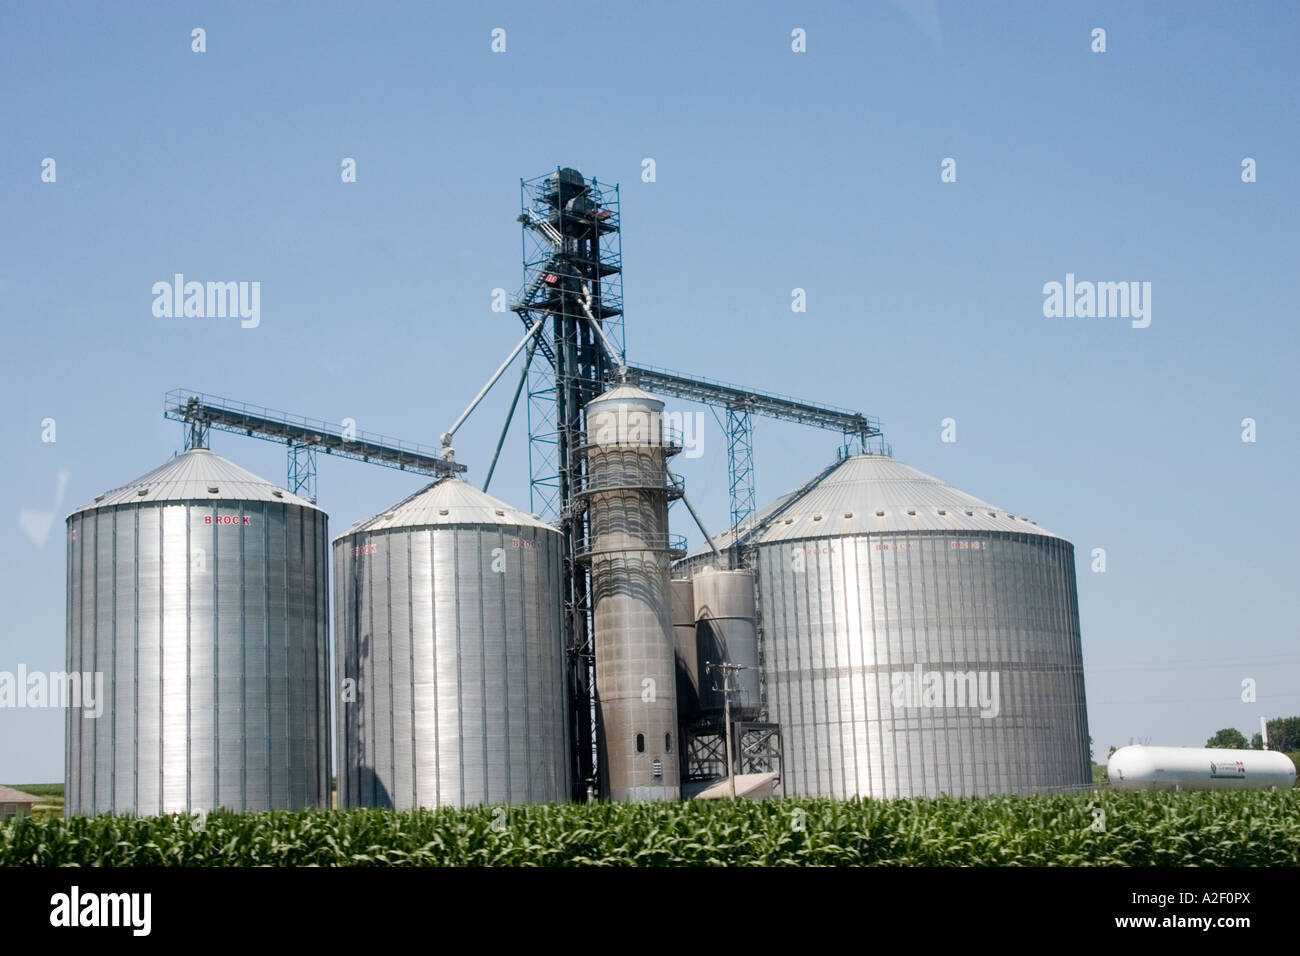 Large capacity silos for grain storage. Hillsboro Wisconsin USA - Stock Image